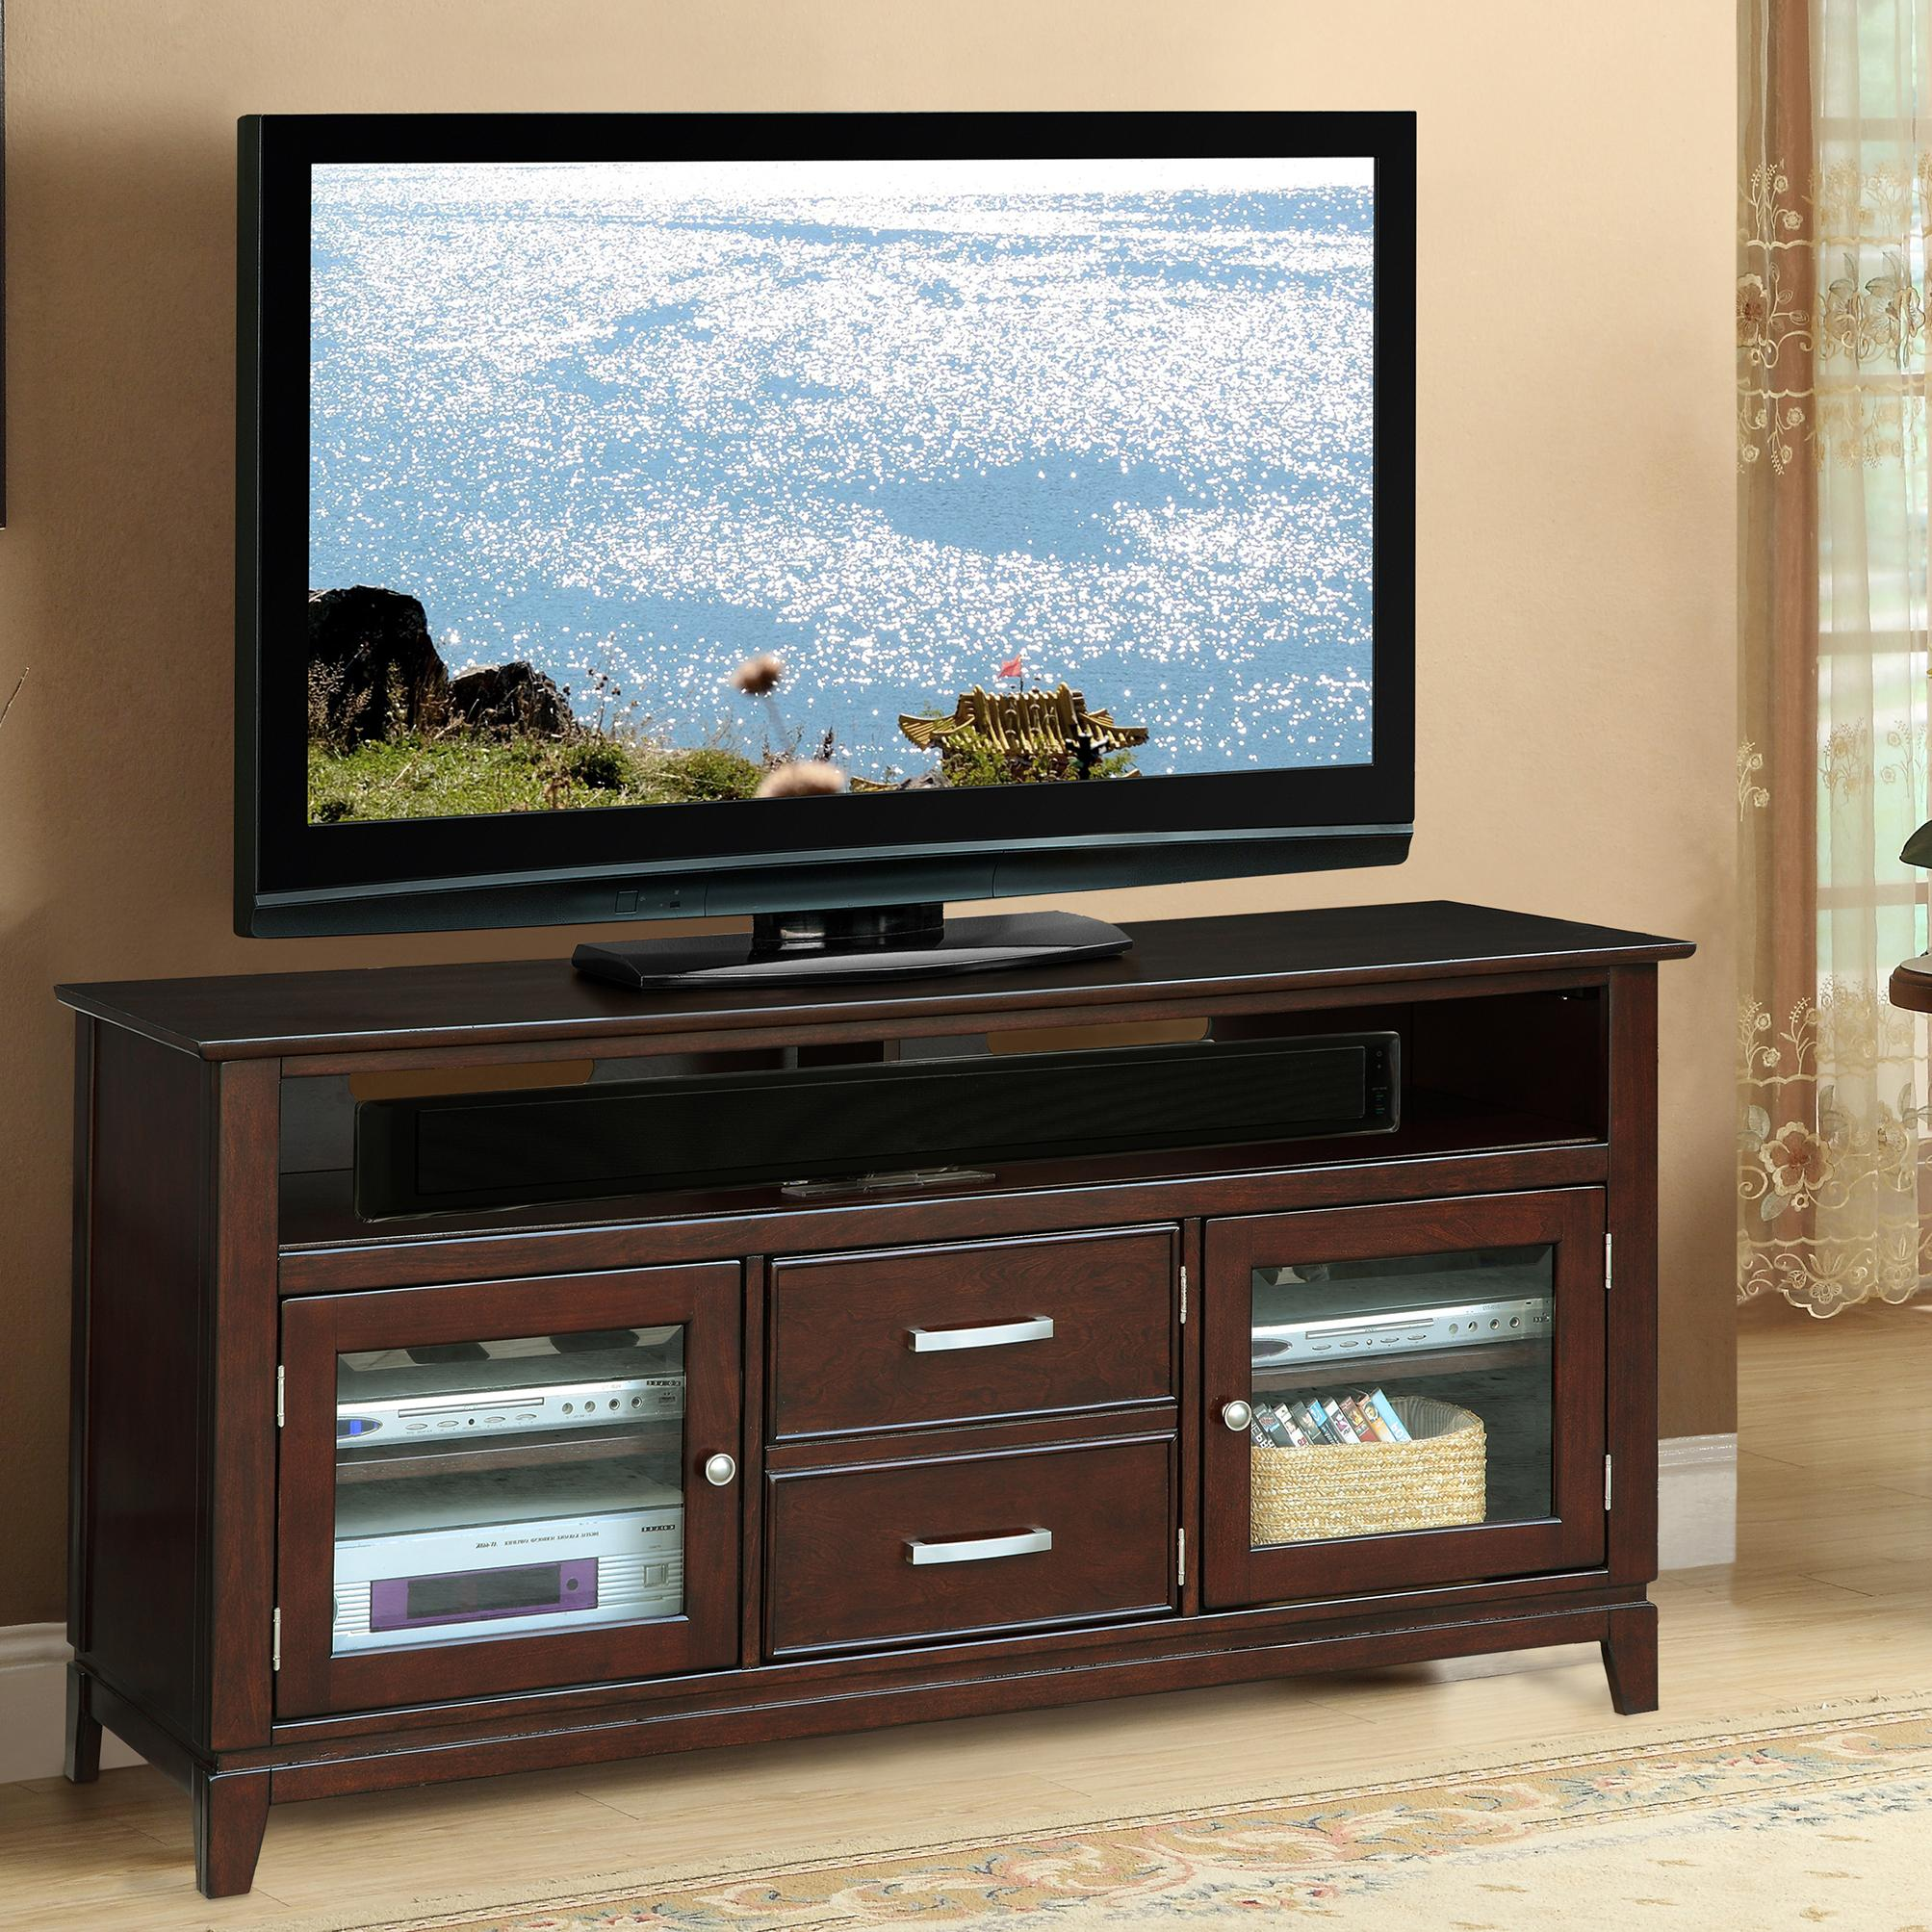 Riverside Furniture Marlowe 2 Drawer 60 Inch TV Console With 2 Doors   AHFA    TV Stands Dealer Locator